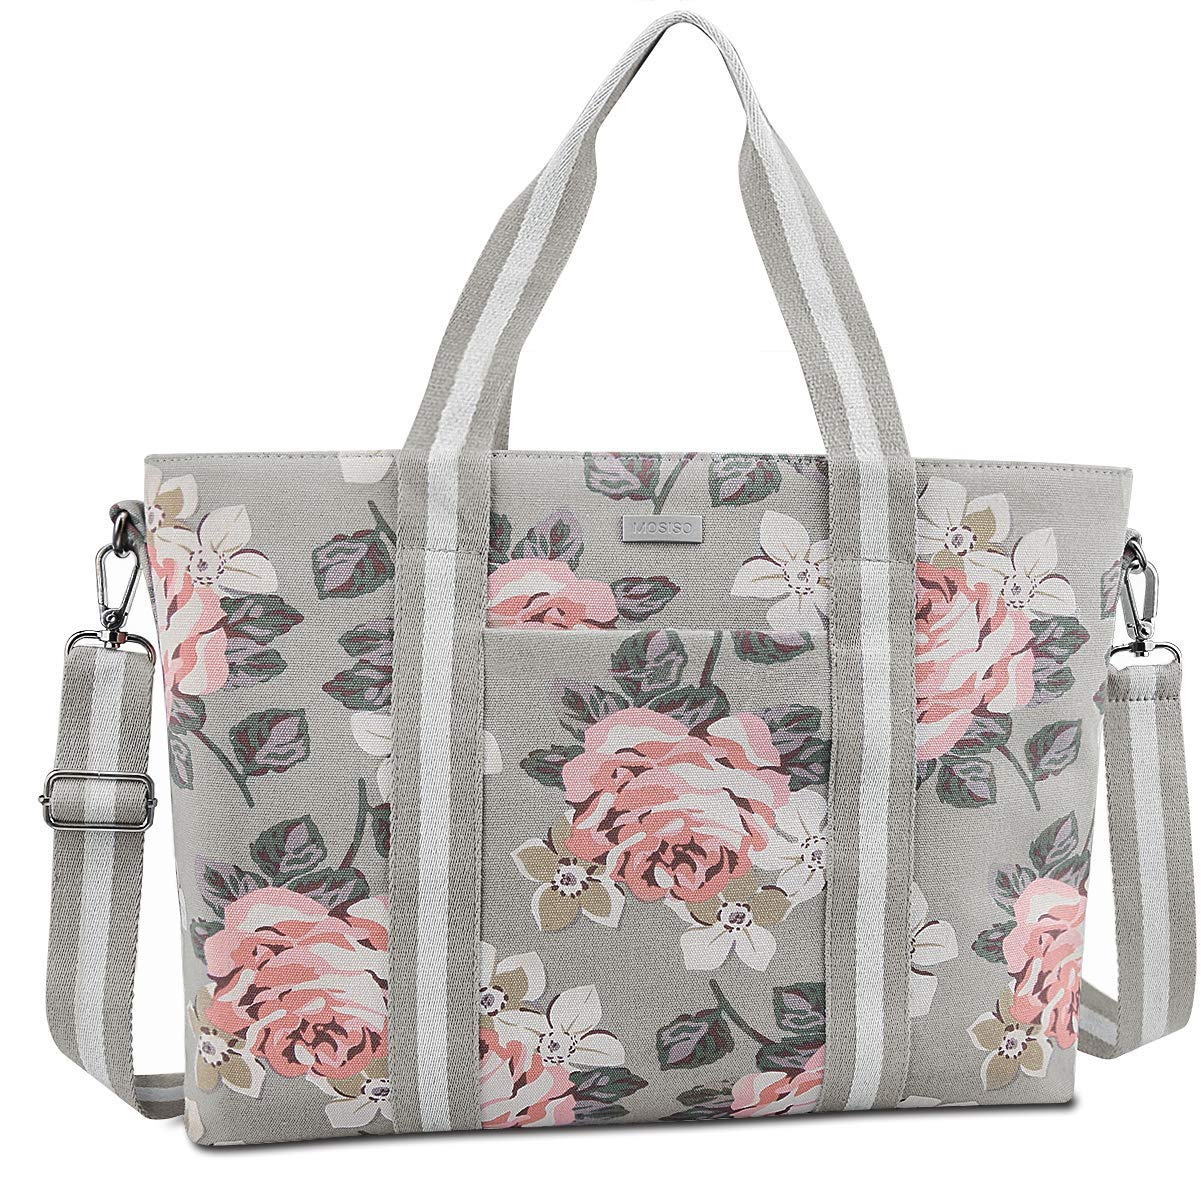 Work & Travel Laptop Tote Bag by MOSISO